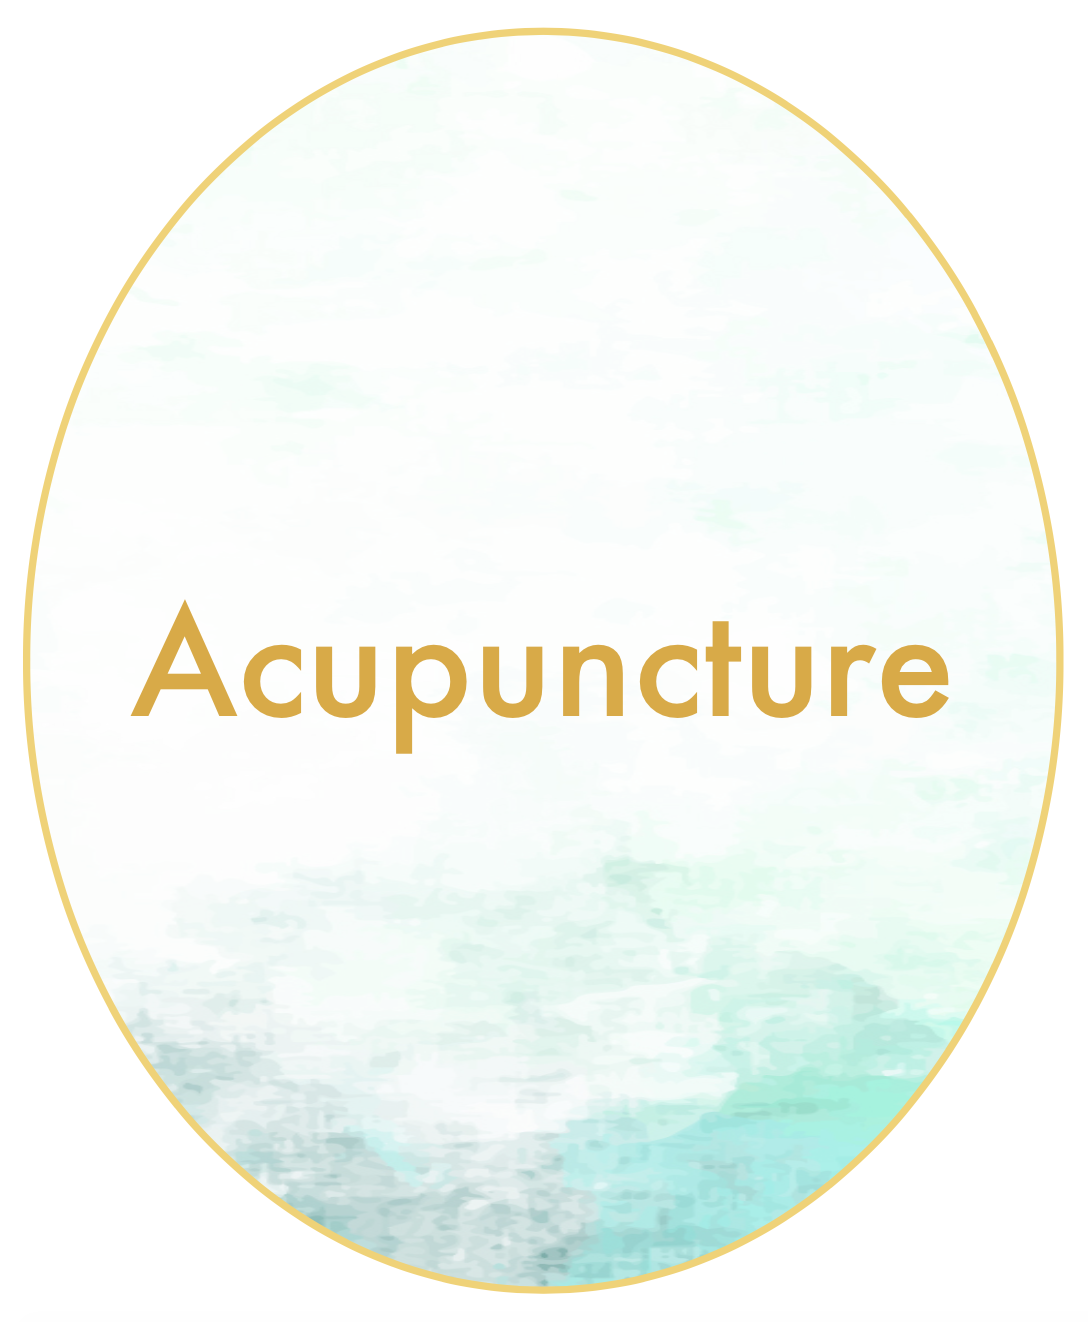 acupuncture .png